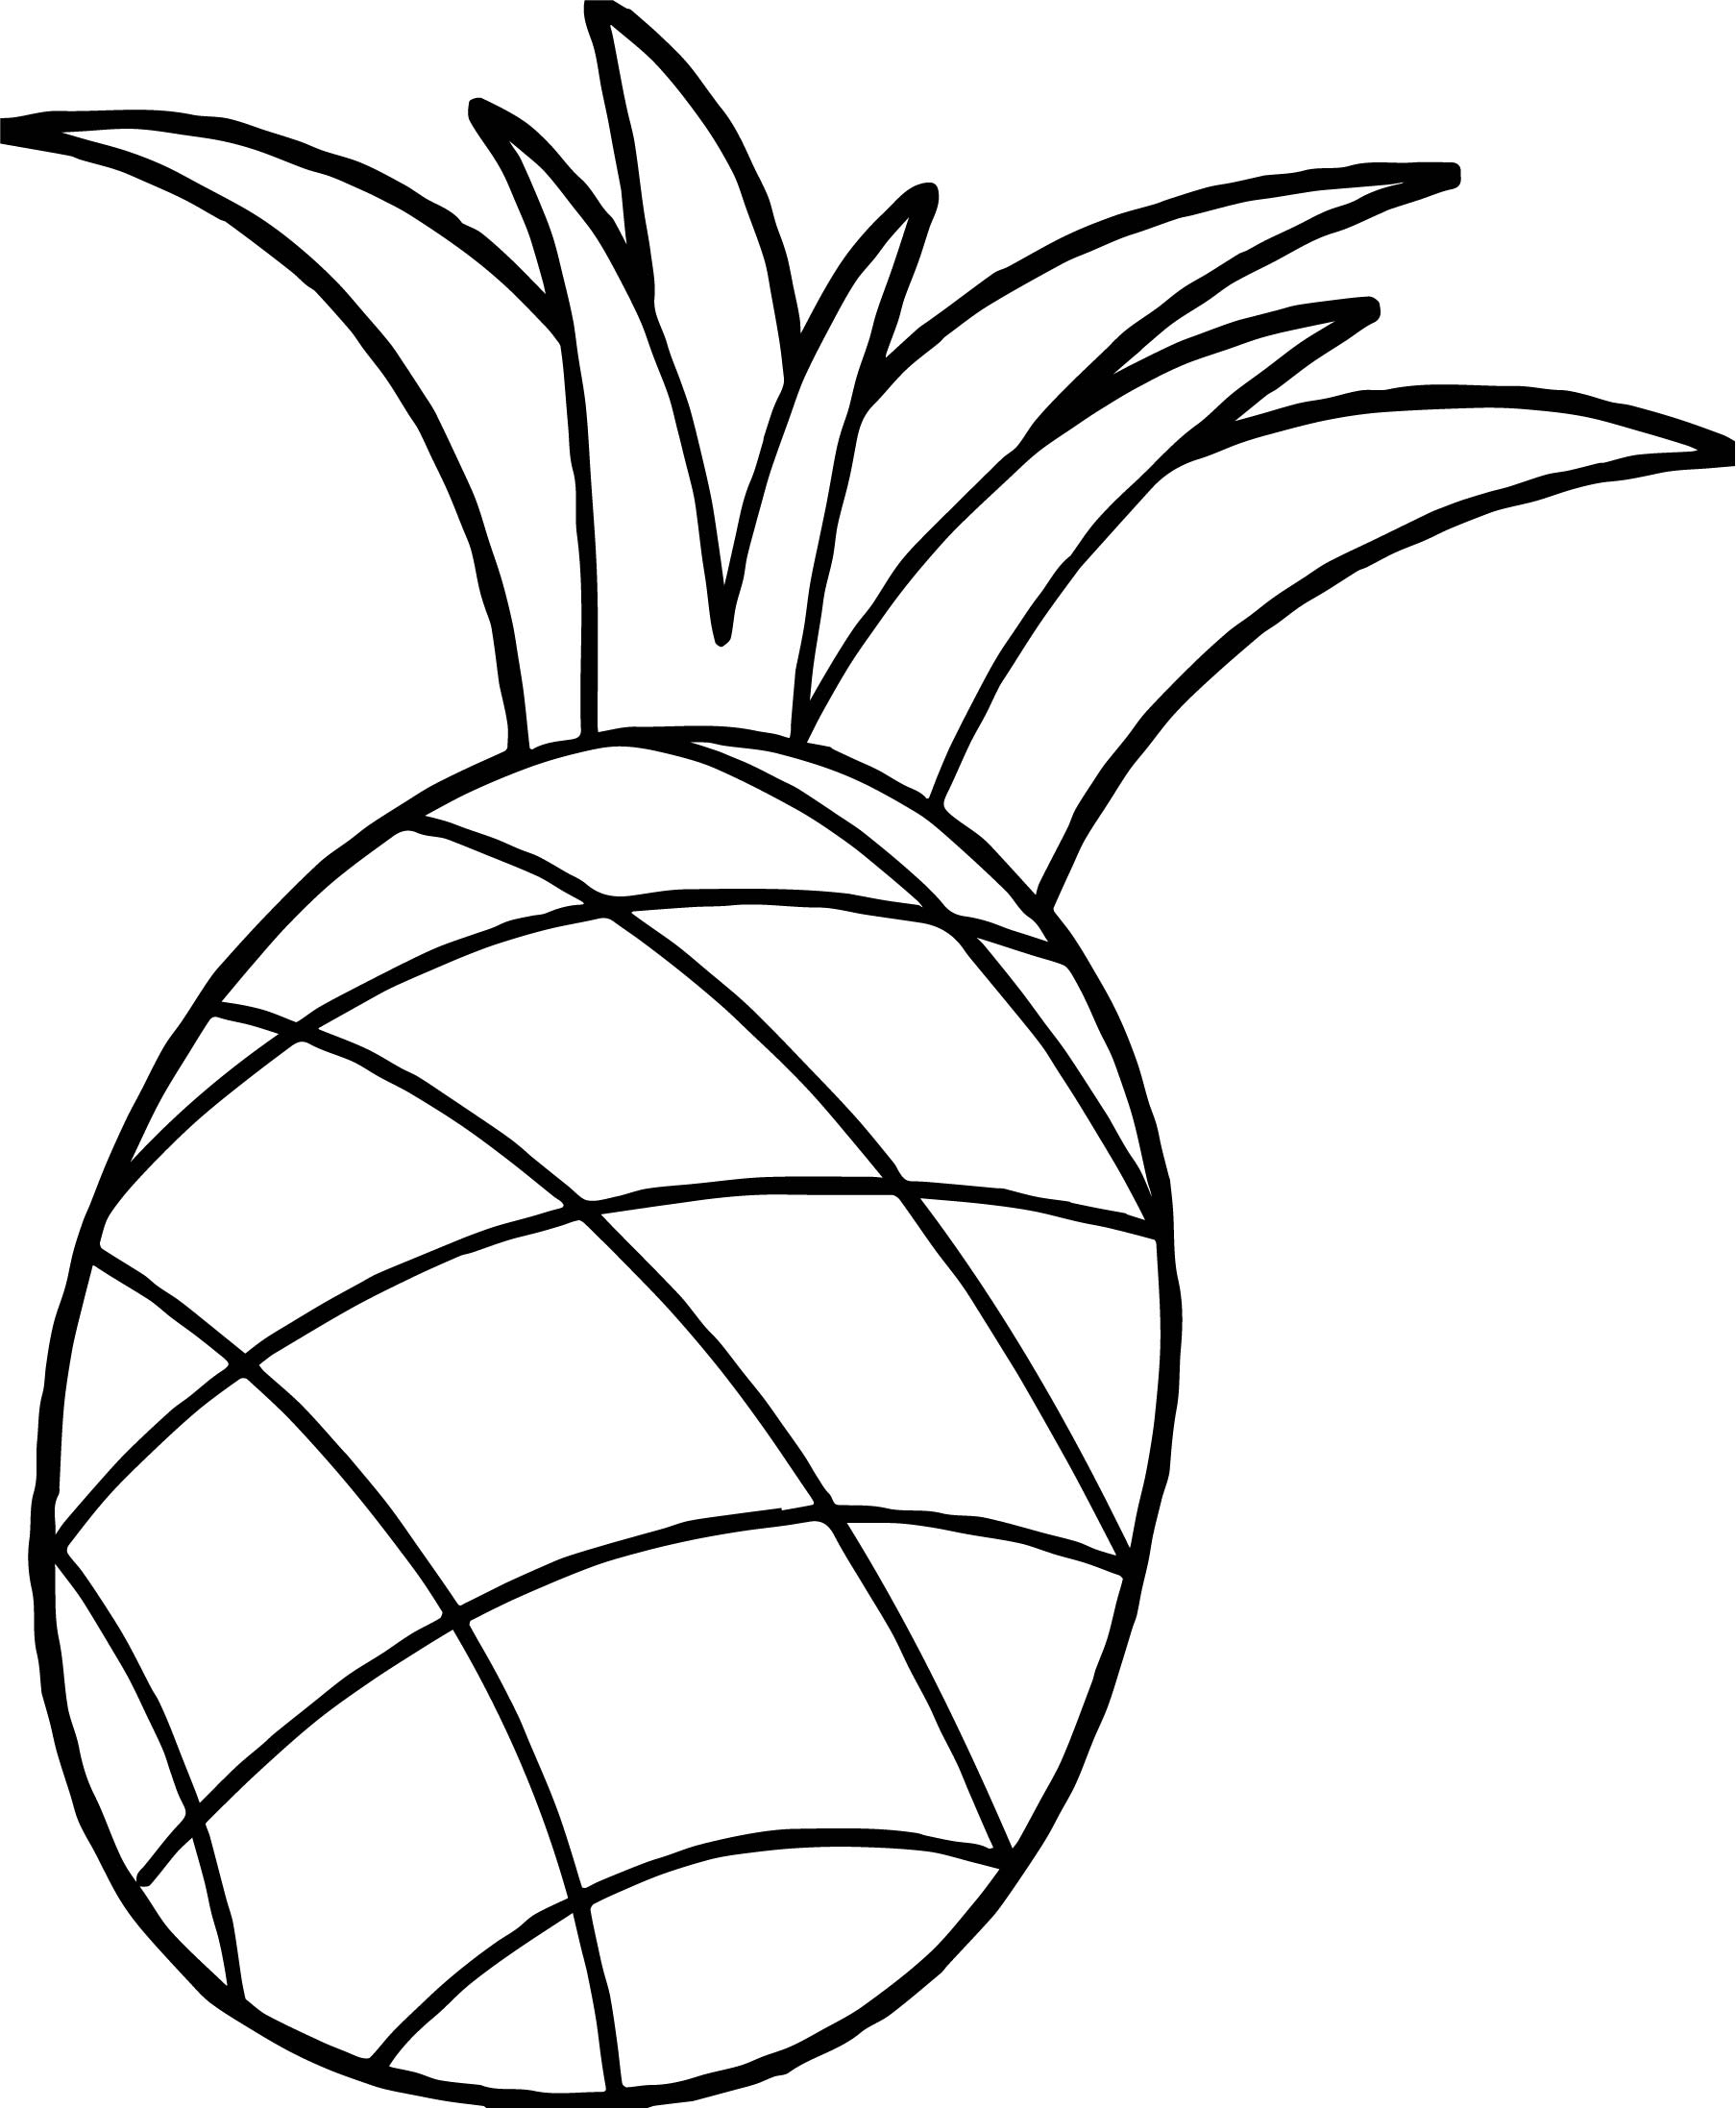 coloring pictures of pineapple coloring pictures of pineapple coloring of pictures pineapple